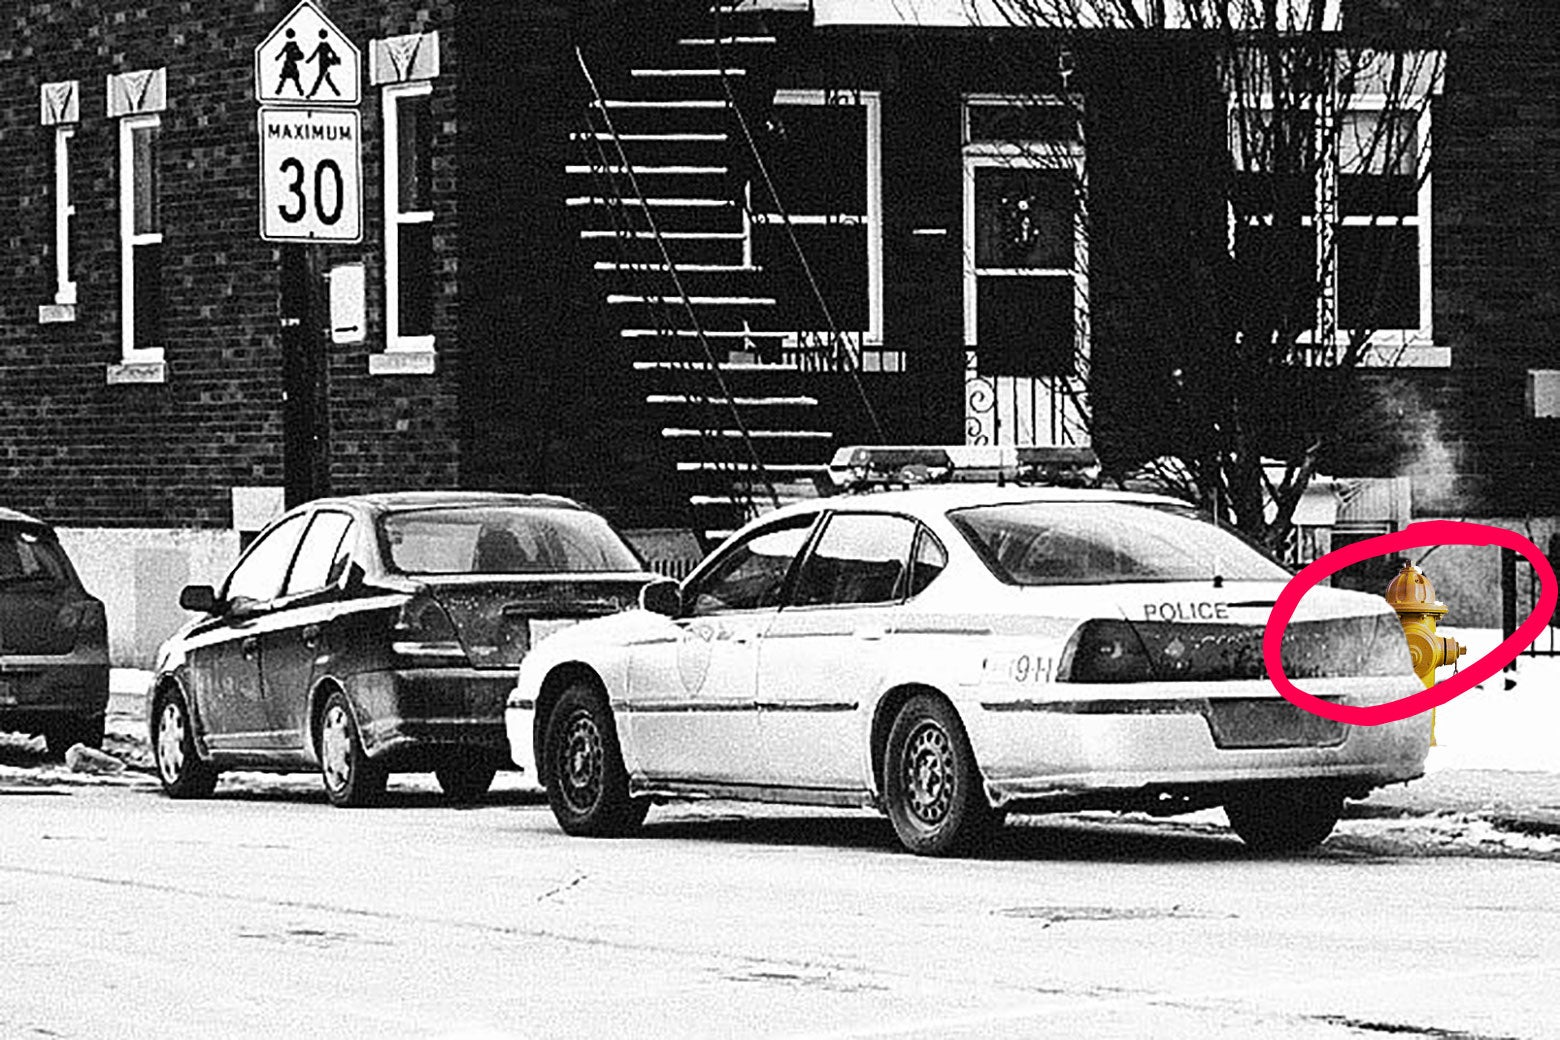 Photo illustration: a police car is illegally parked in front of a fire hydrant that is circled. Photo illustration by Slate. Photos by Thinkstock.